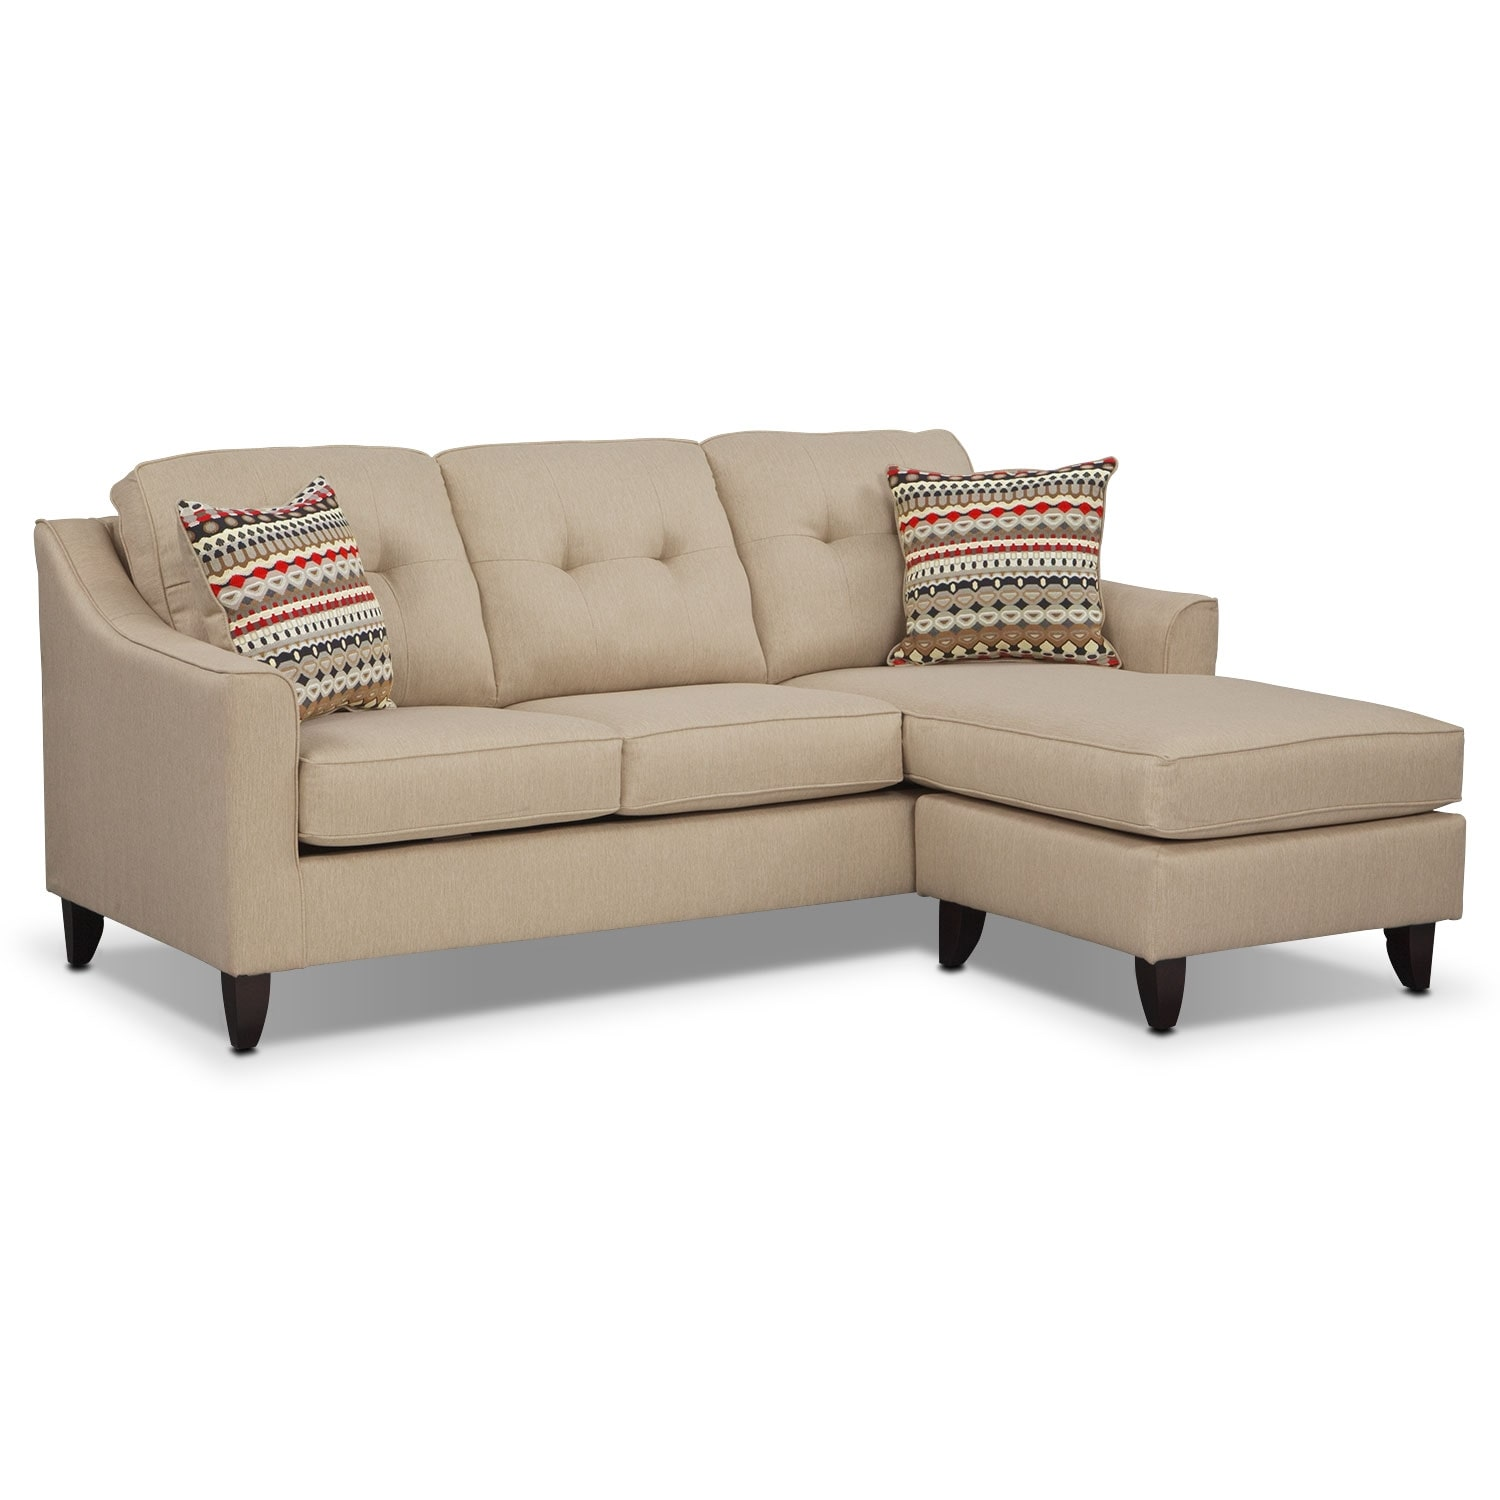 Value City Furniture Clearance Center: Marco Chaise Sofa - Cream